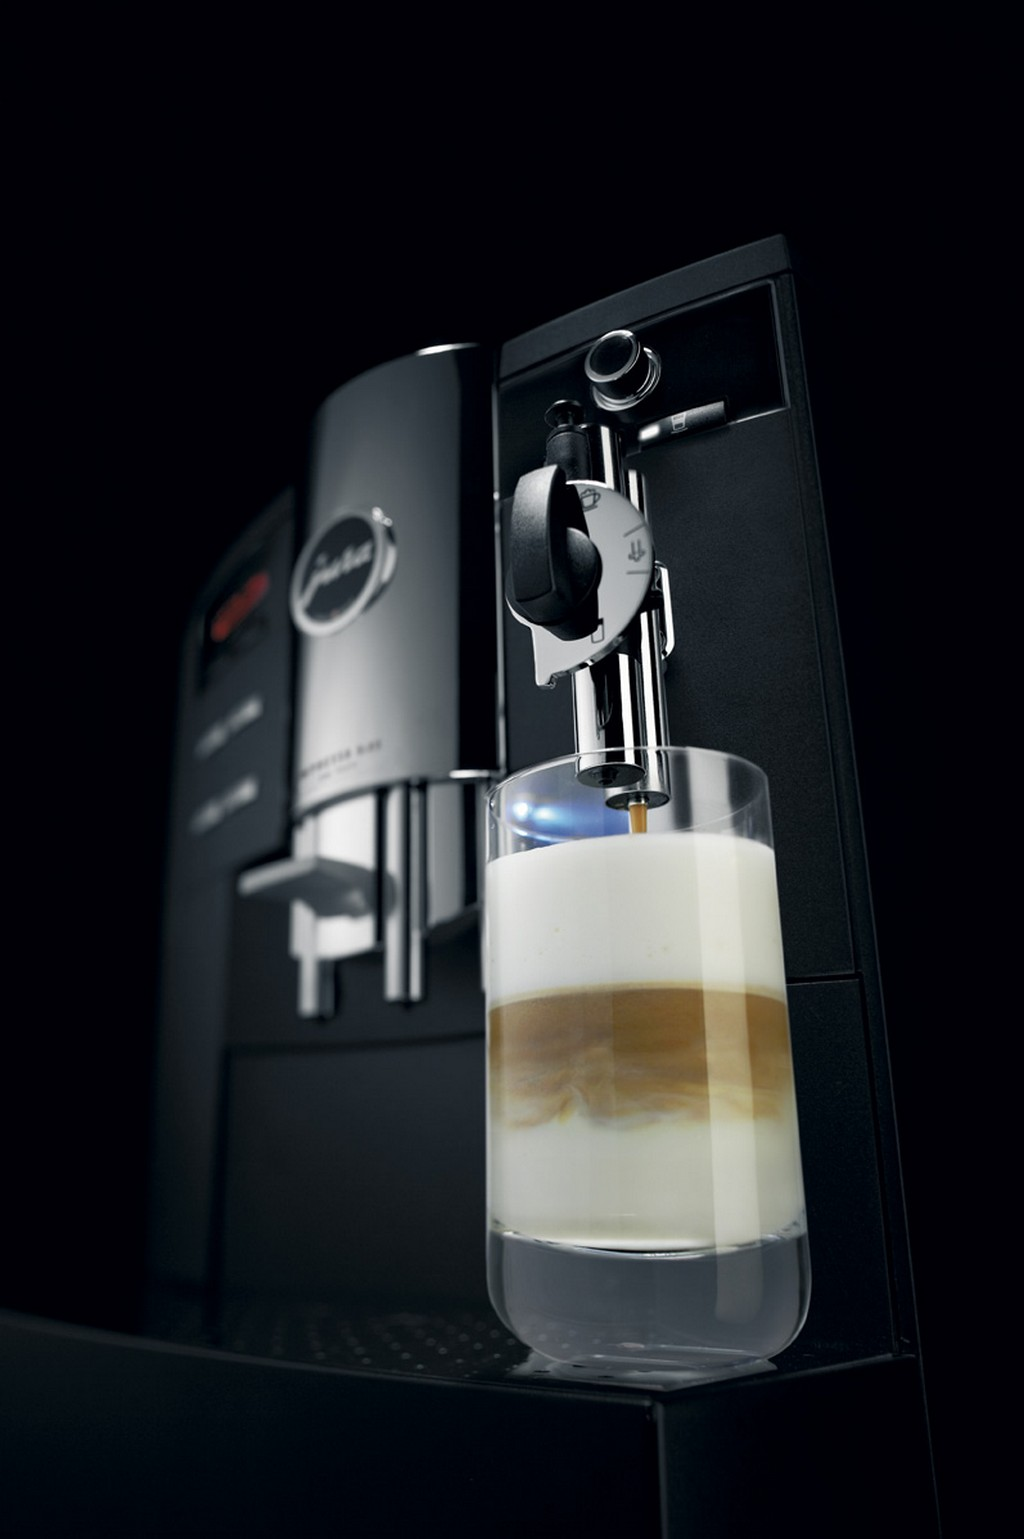 coffee and espresso combination machine, how to use an espresso machine, miniature espresso maker